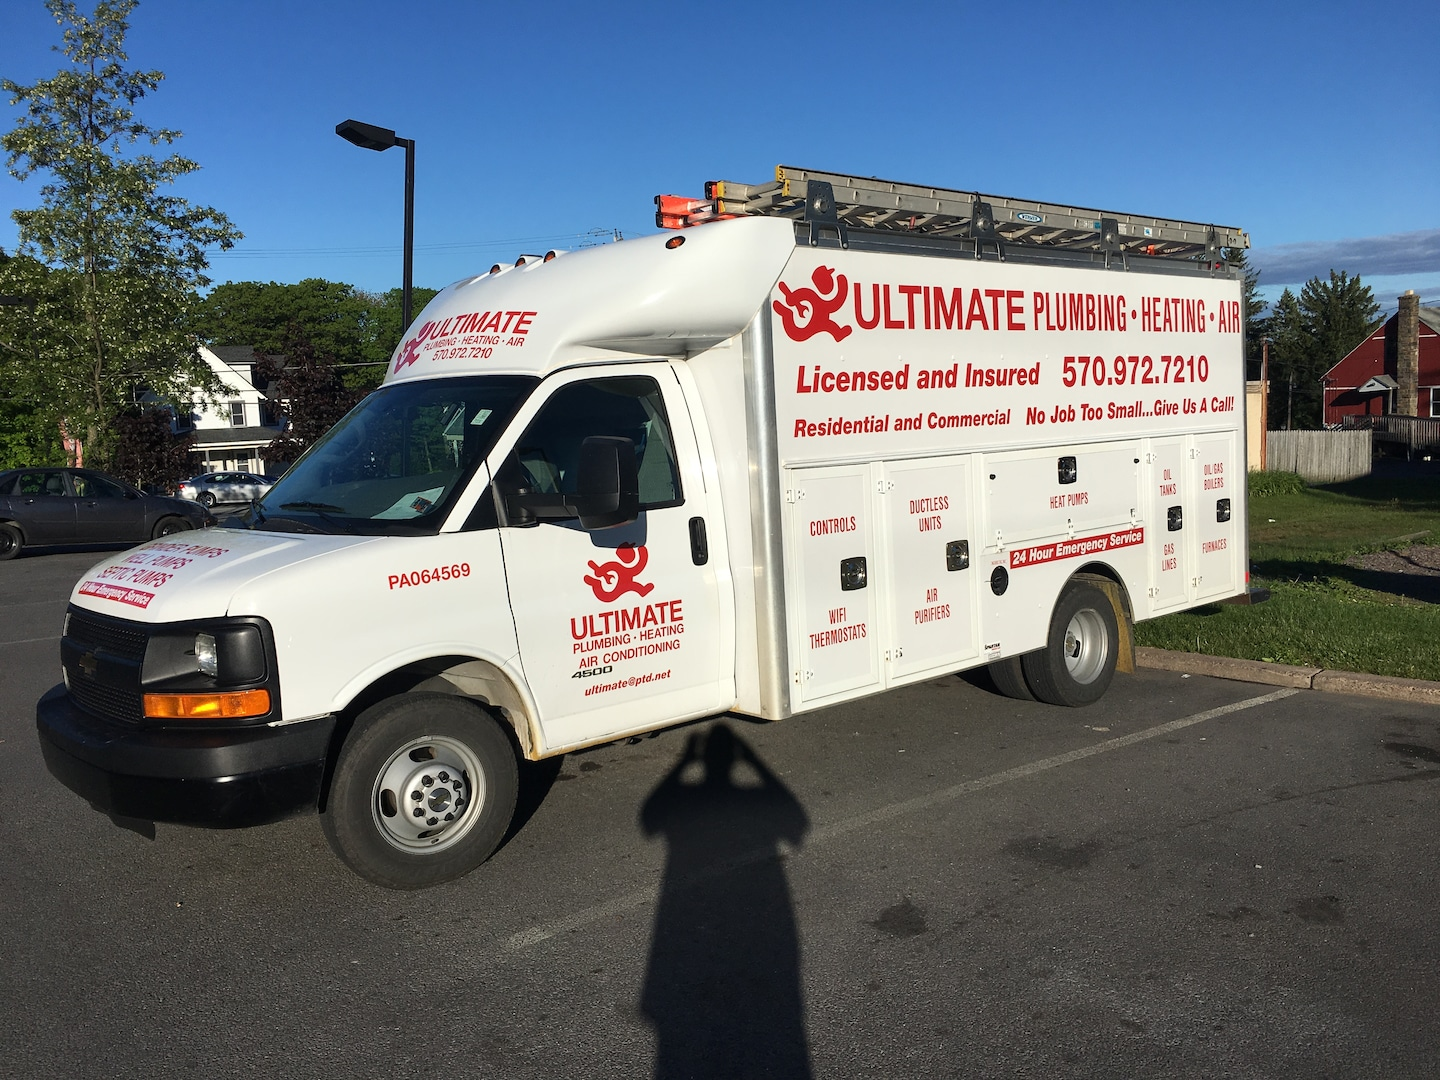 Ultimate Plumbing Heating & Air Conditioning LLC